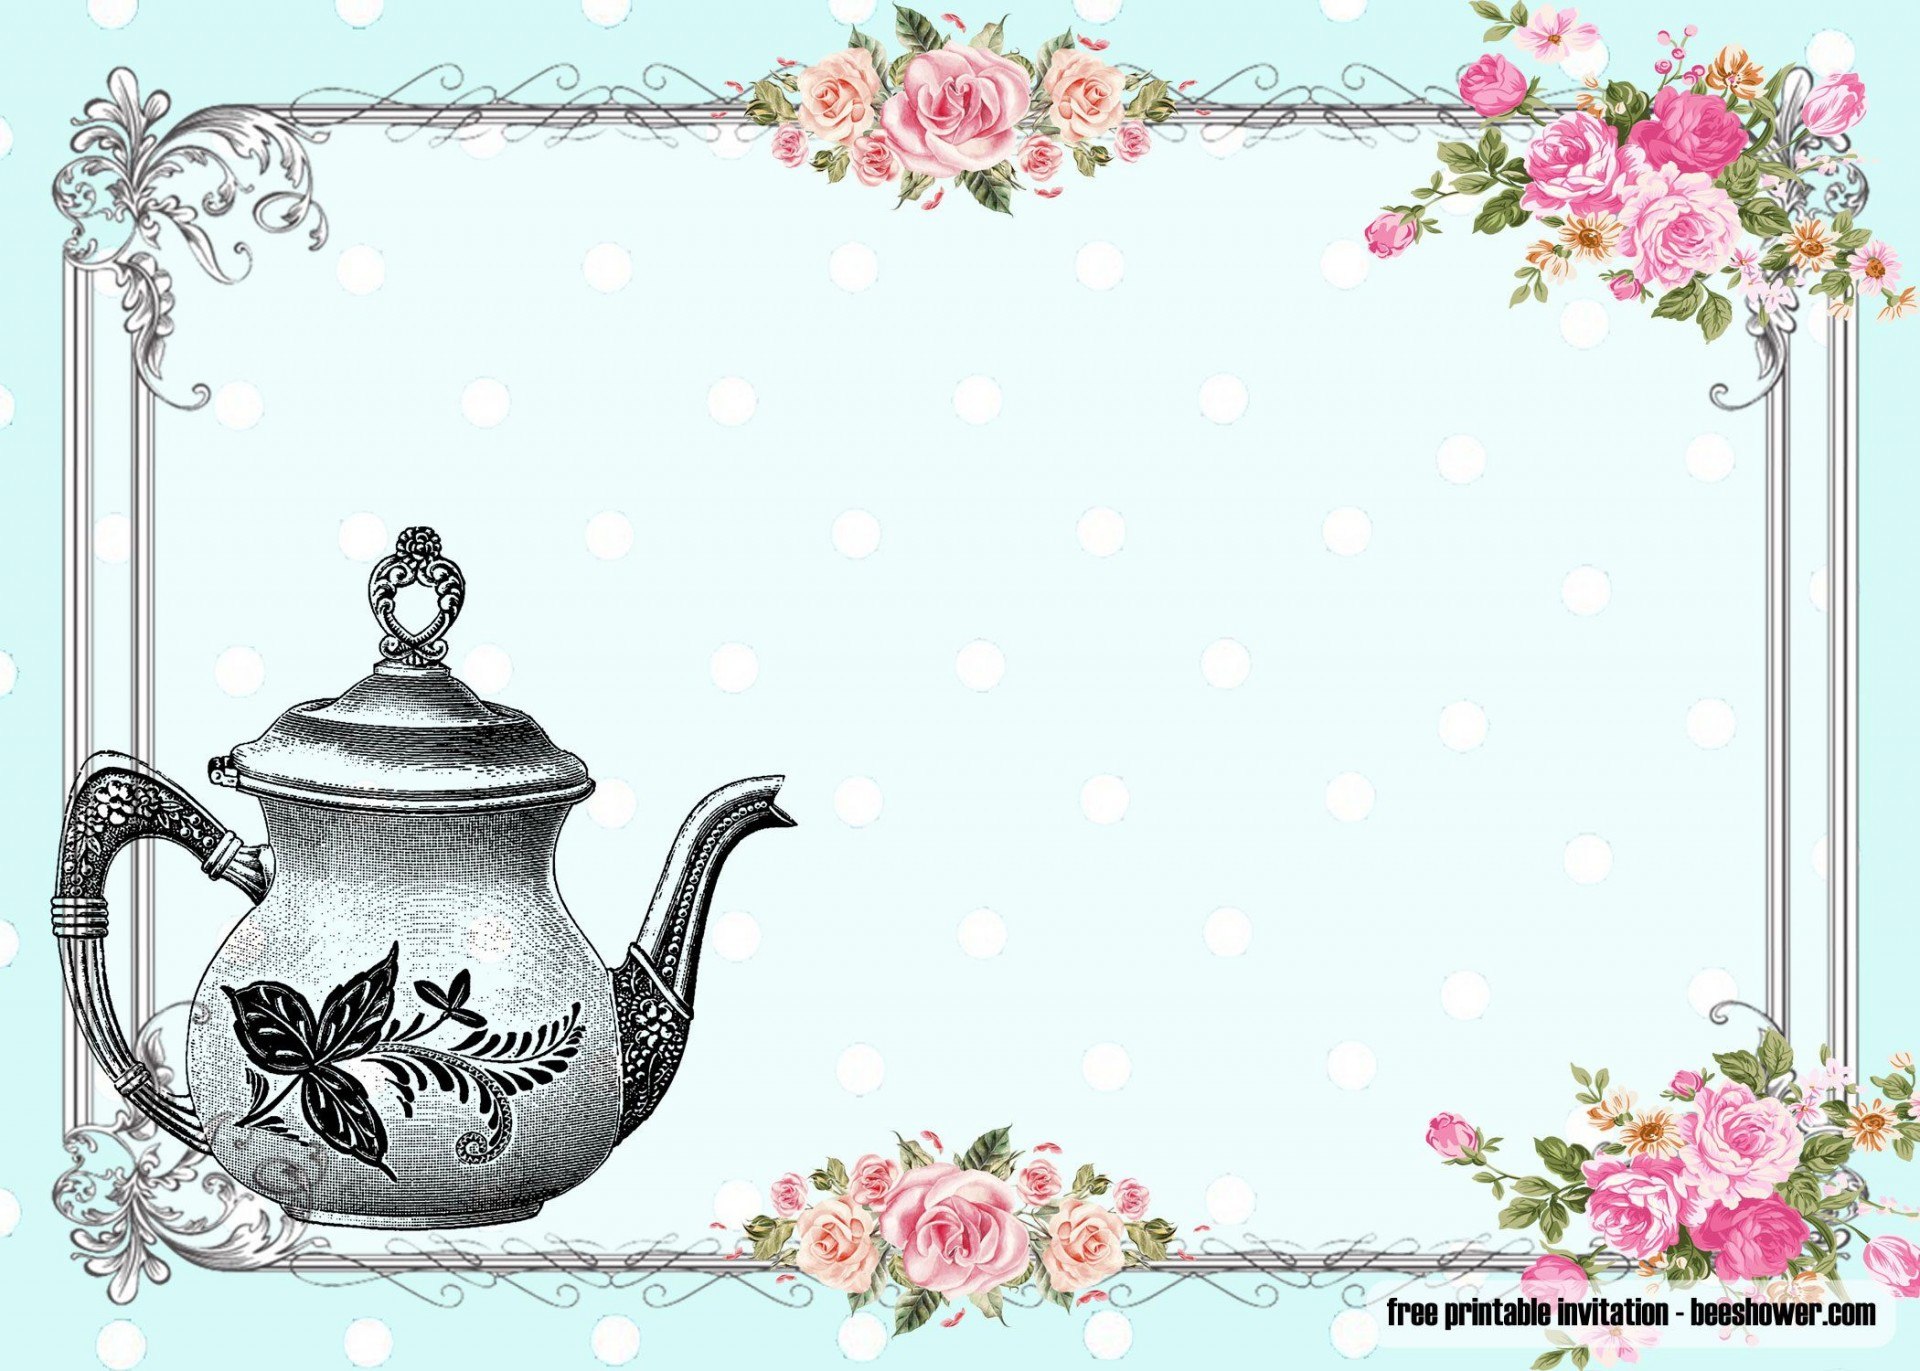 010 Awful Tea Party Invitation Template Idea  Online Letter1920